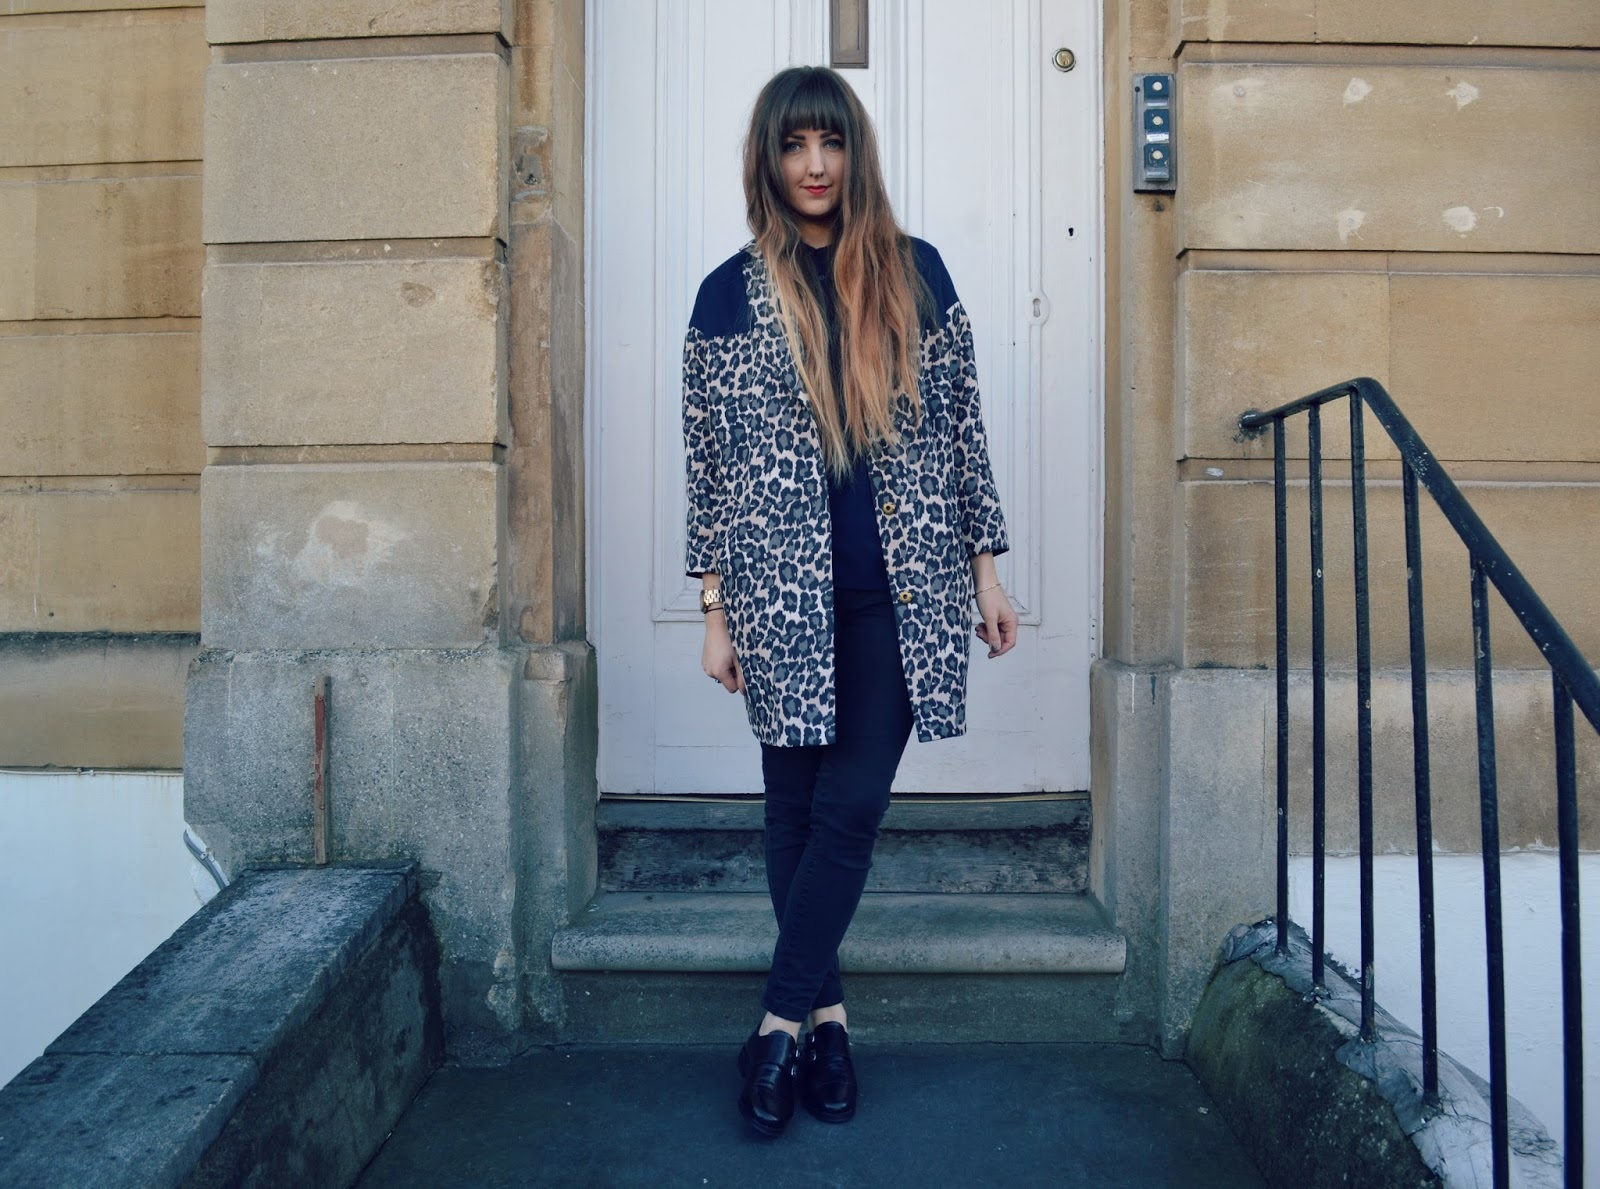 topshop monk shoes asos leopard coat gap skinny jeans